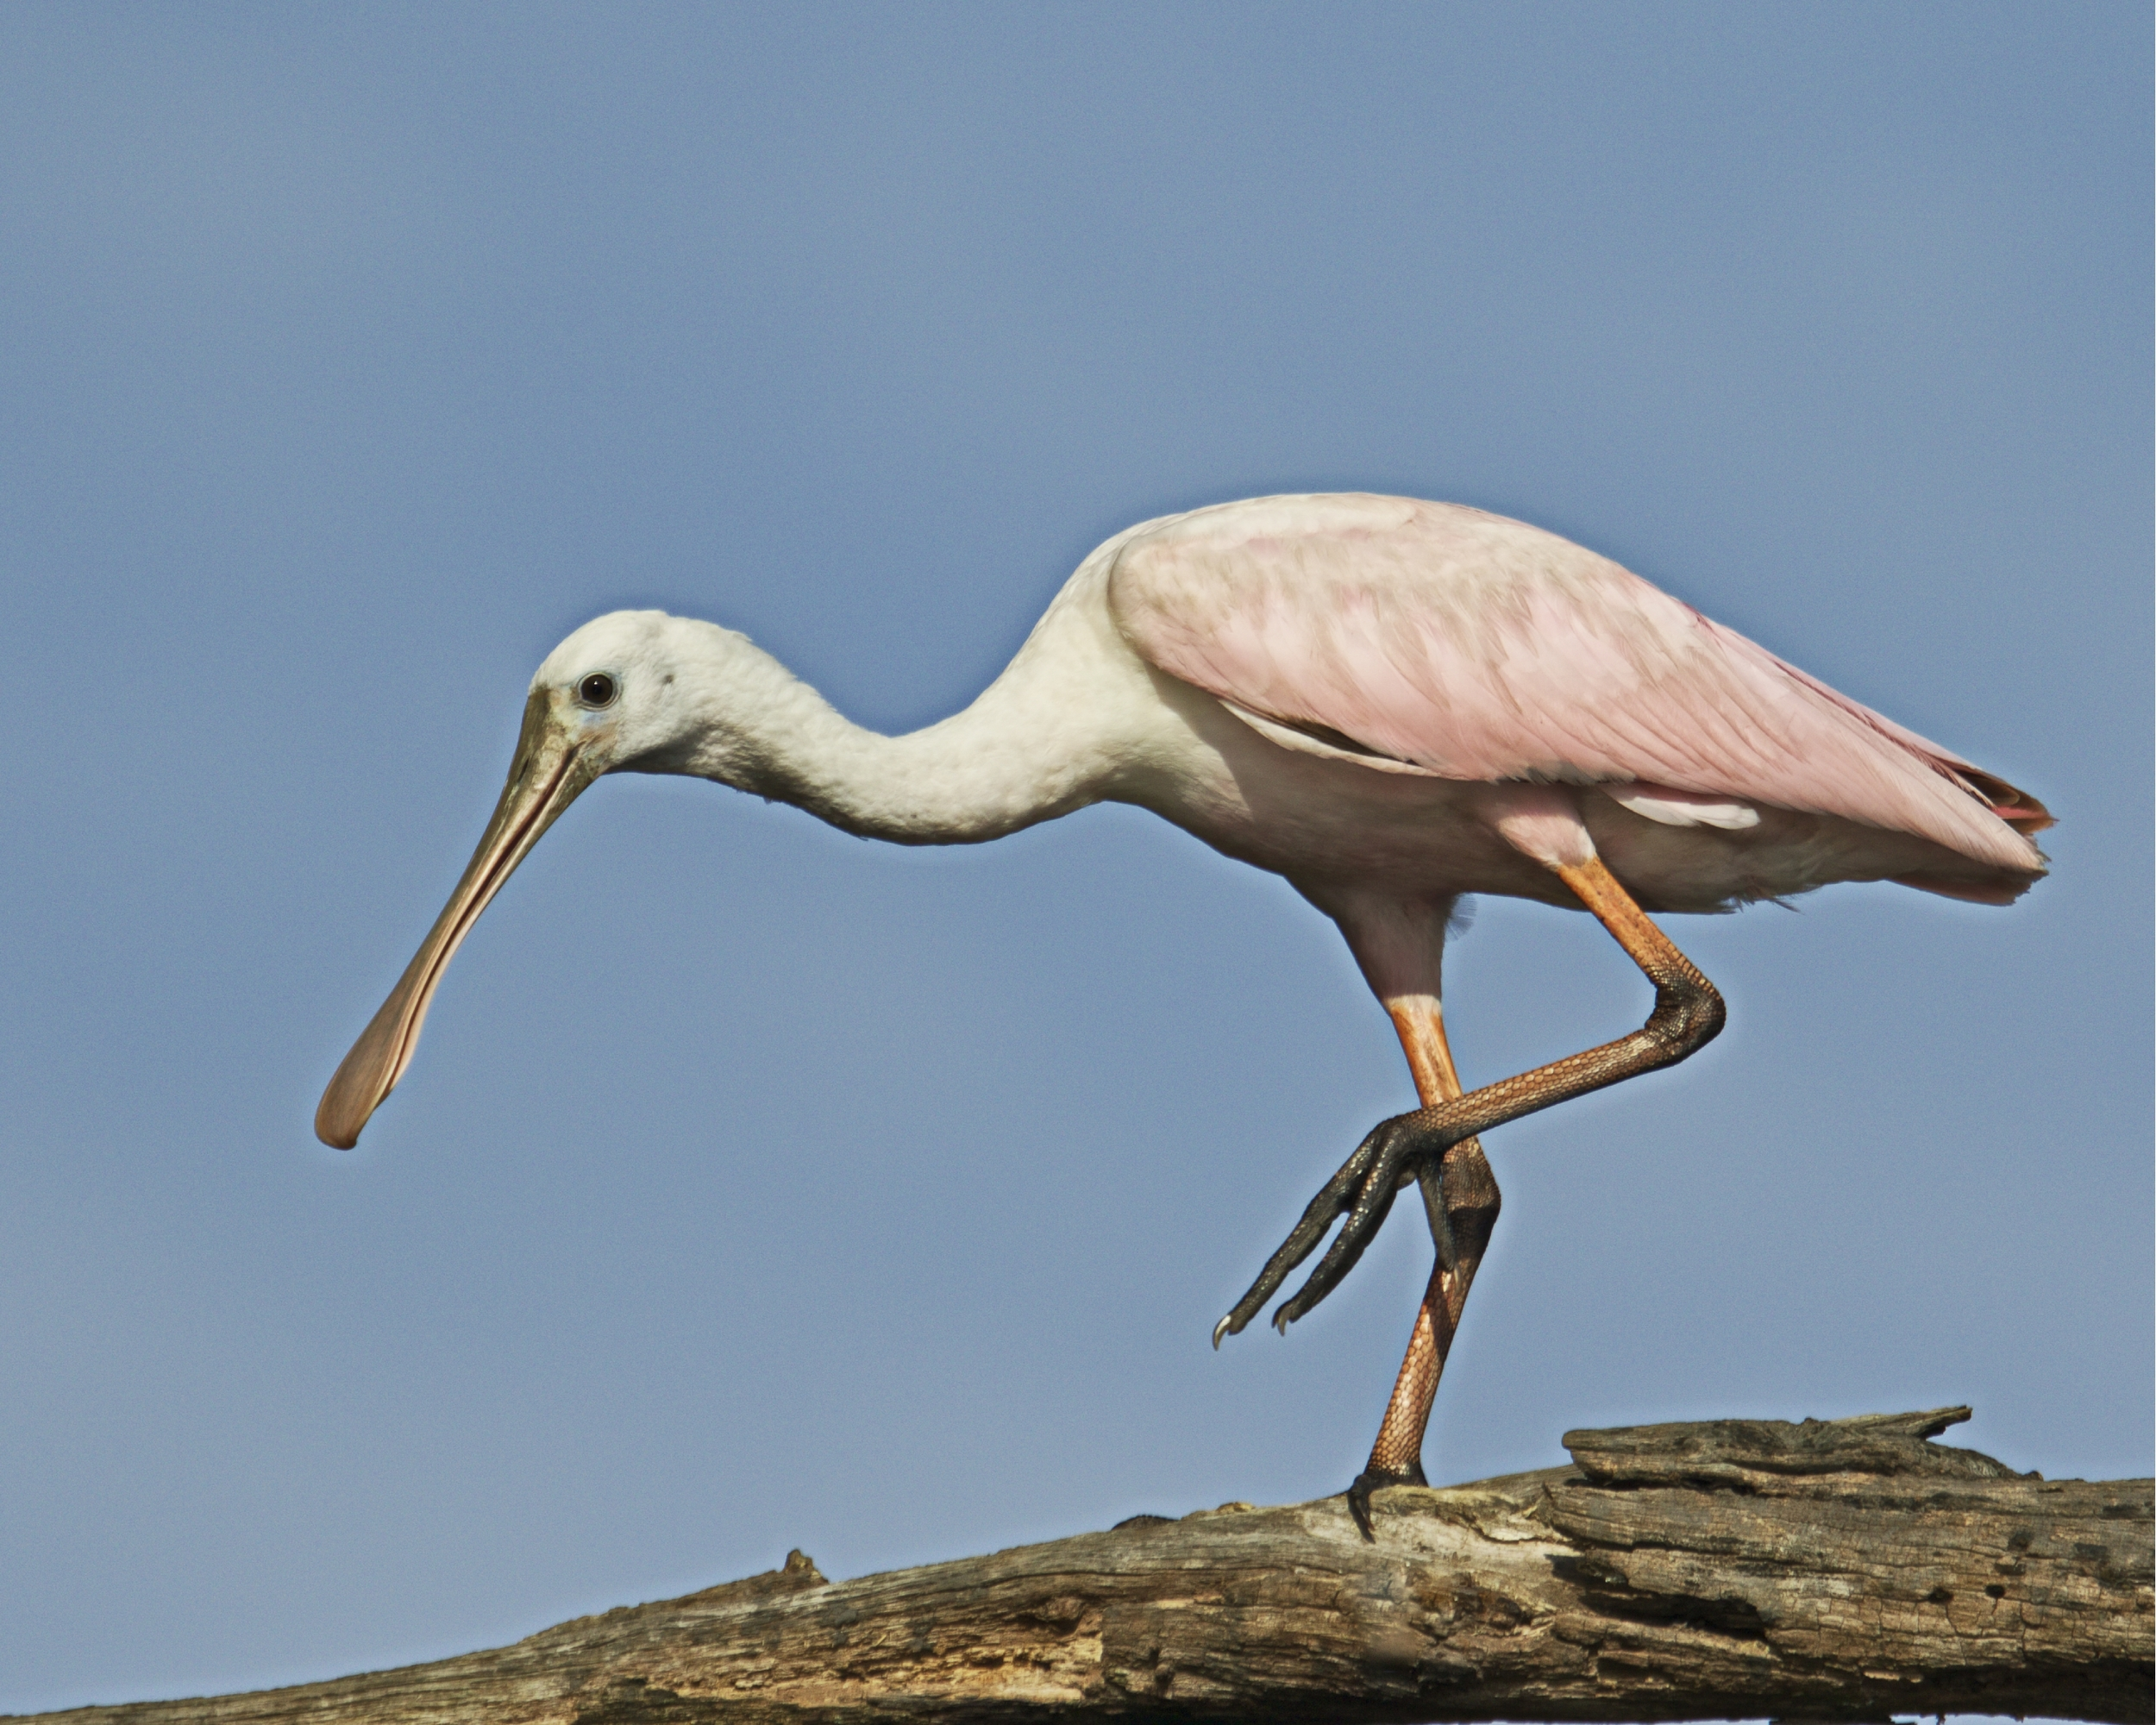 The spoonbill is happy now..